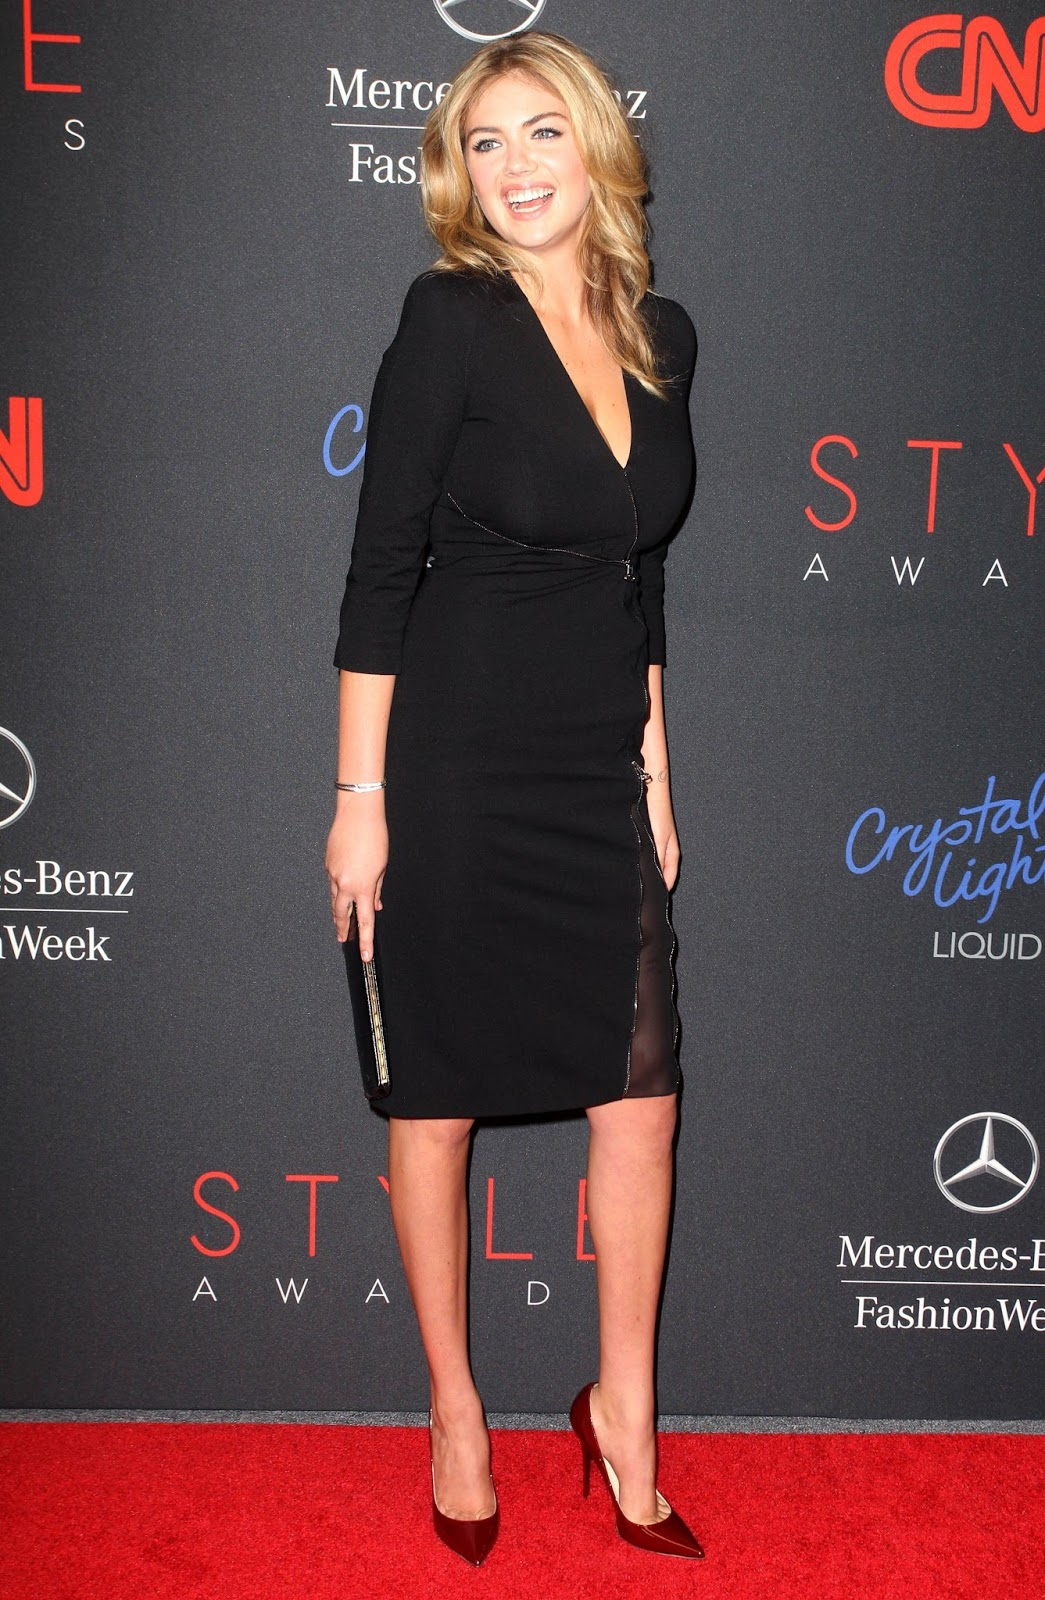 Celebrity Fashion At The 2013 Style Awards In Nyc